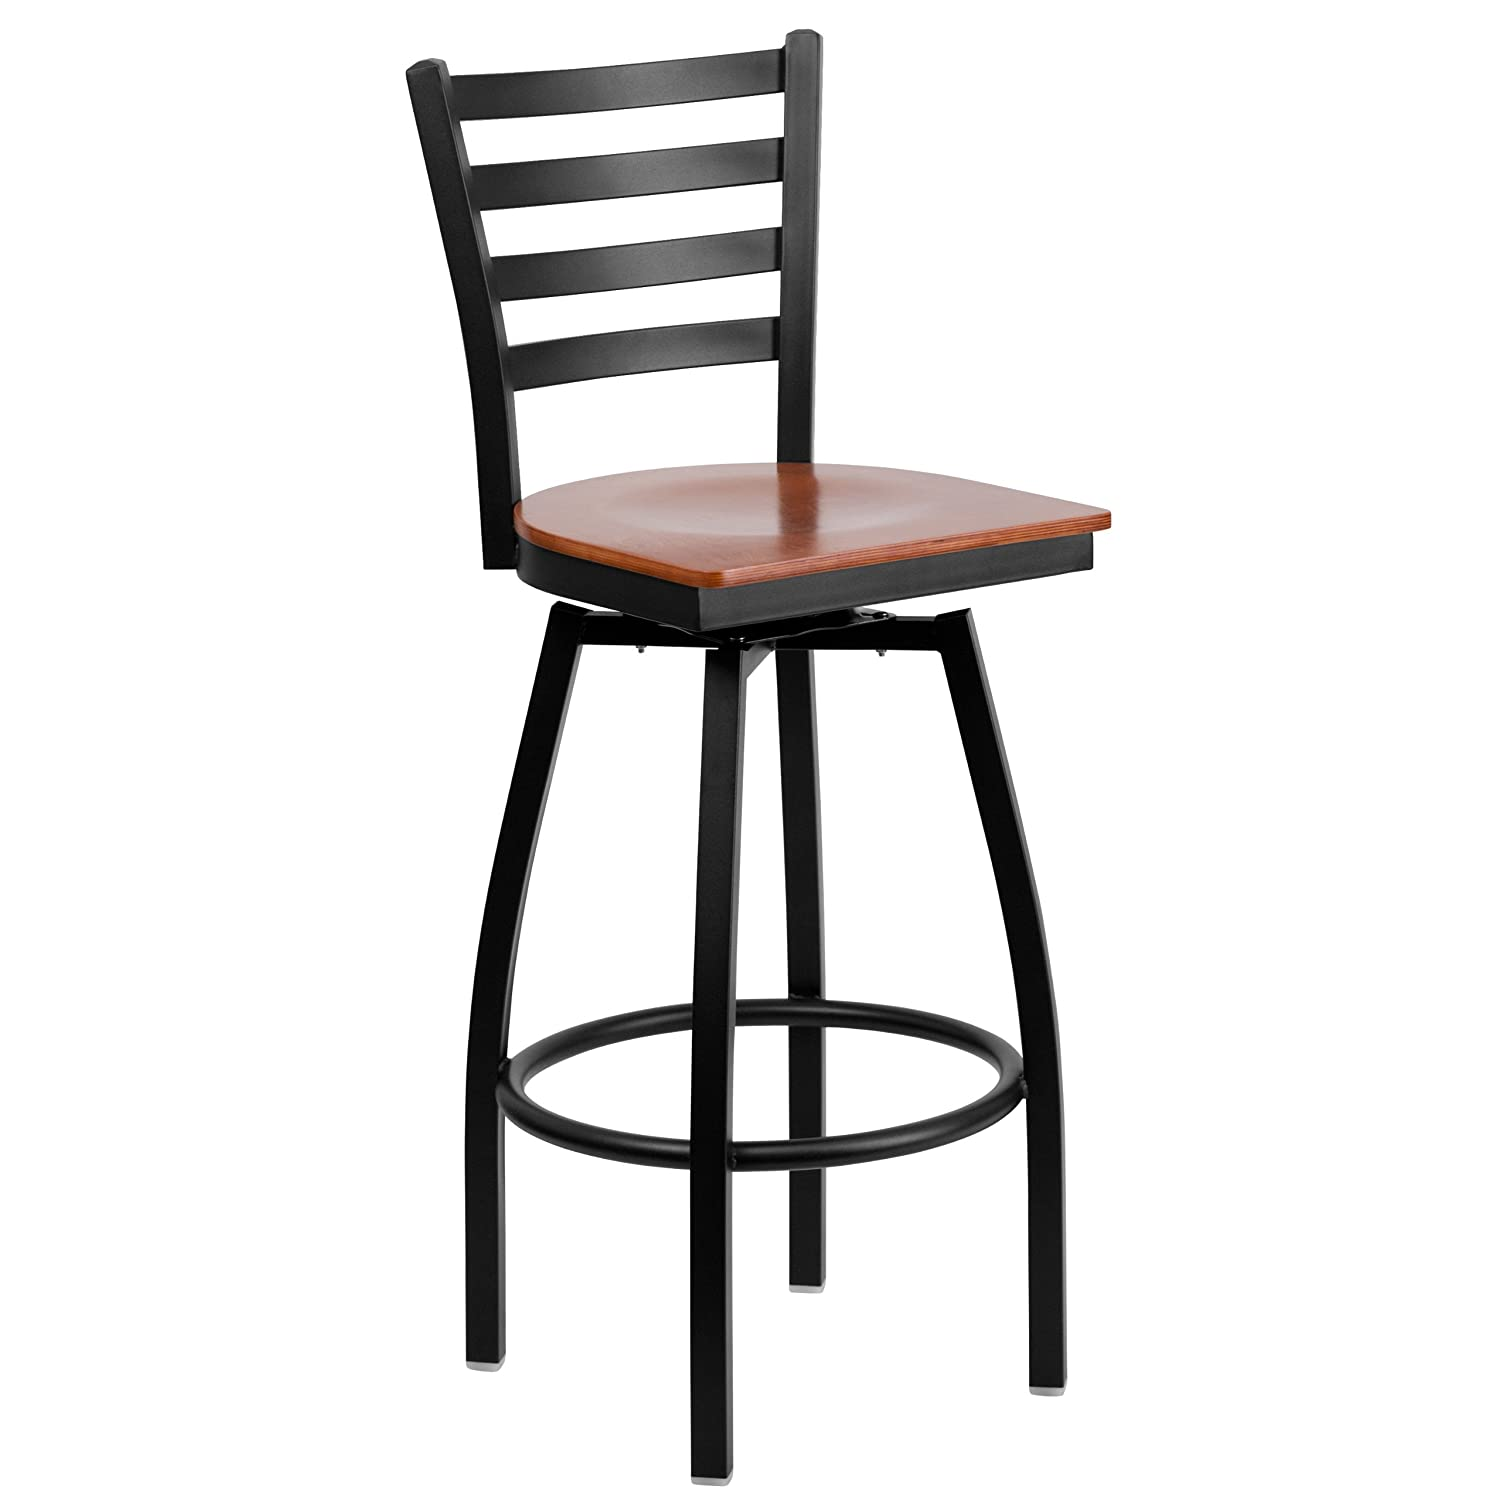 Amazon.com Flash Furniture HERCULES Series Black Ladder Back Swivel Metal Barstool - Cherry Wood Seat Home u0026 Kitchen  sc 1 st  Amazon.com & Amazon.com: Flash Furniture HERCULES Series Black Ladder Back ... islam-shia.org